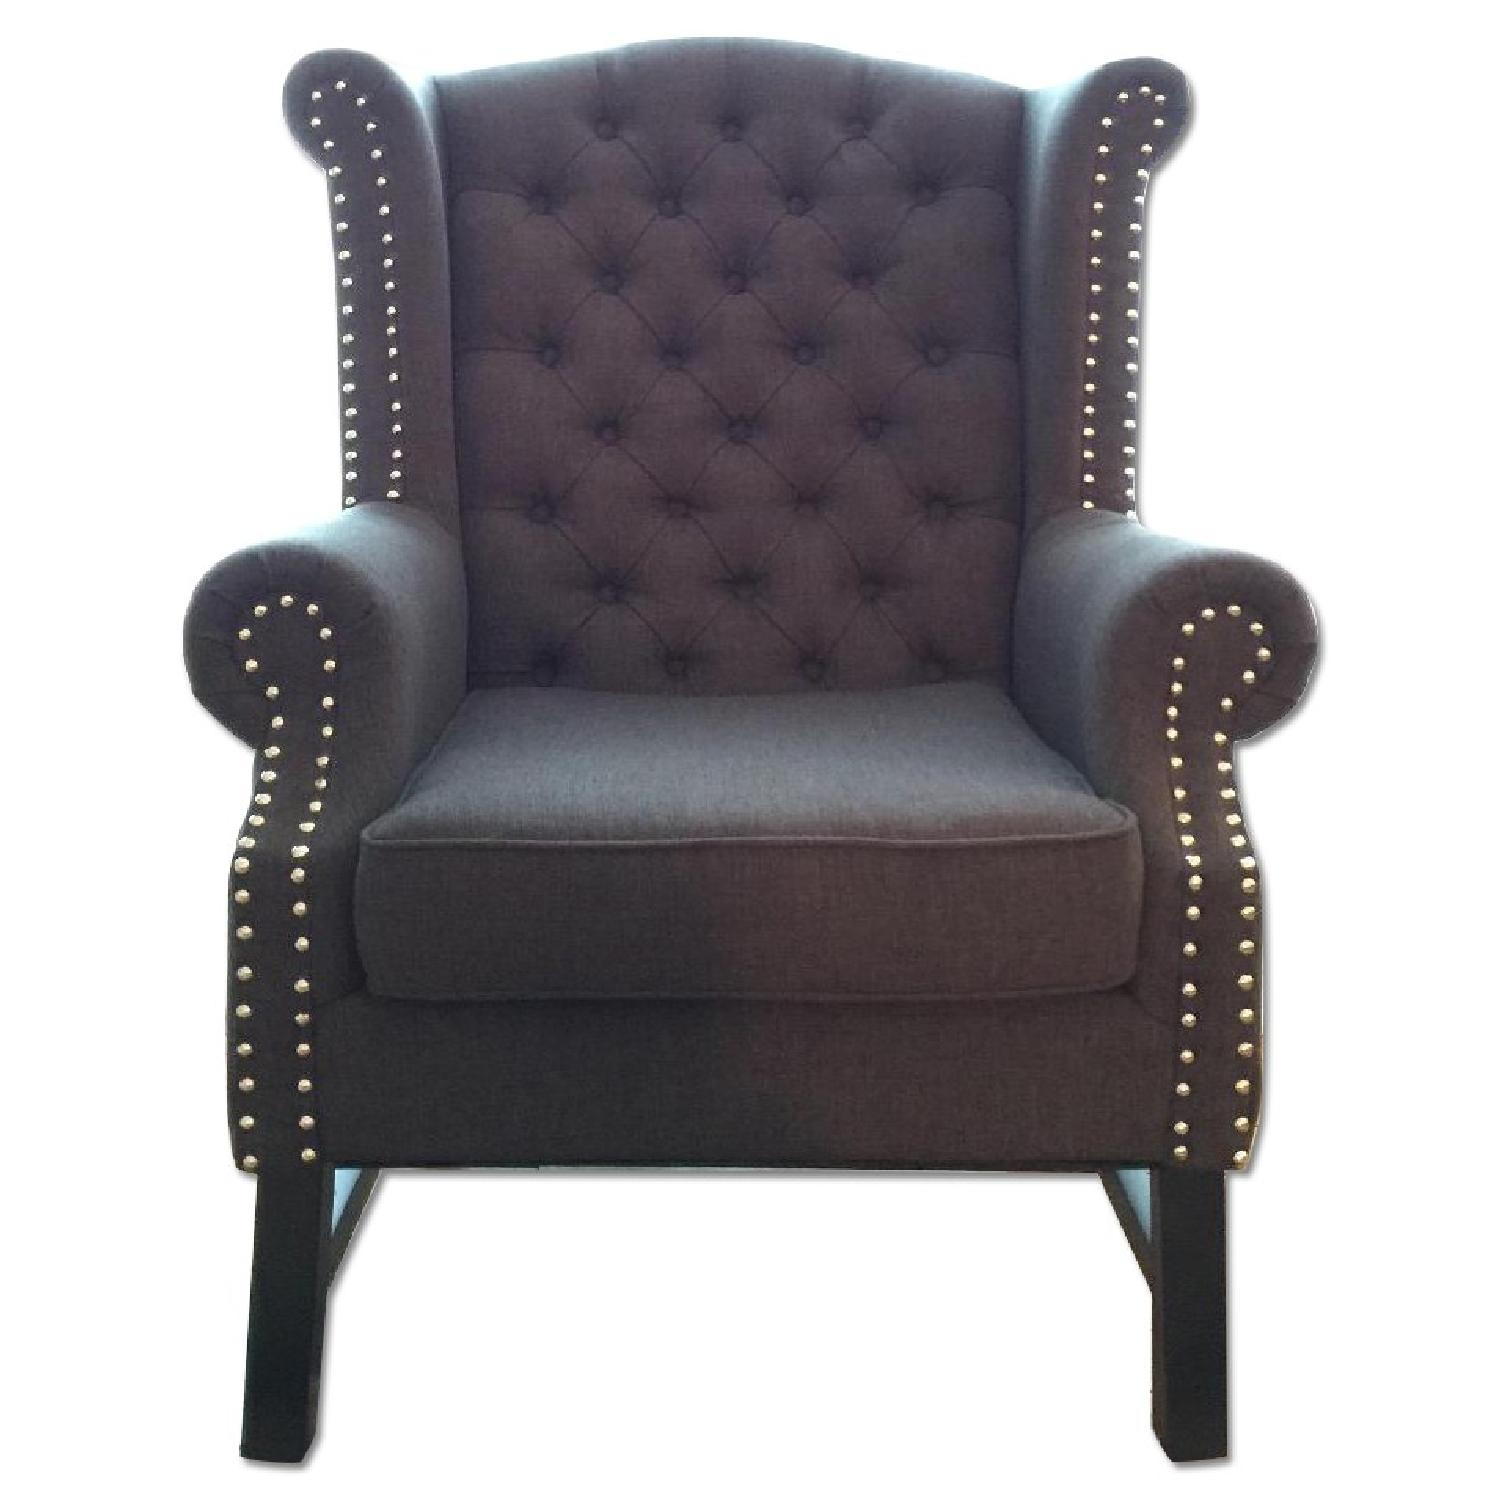 Baxton Studio Grey Linen Armchair w/ Nail Head Trim - image-0